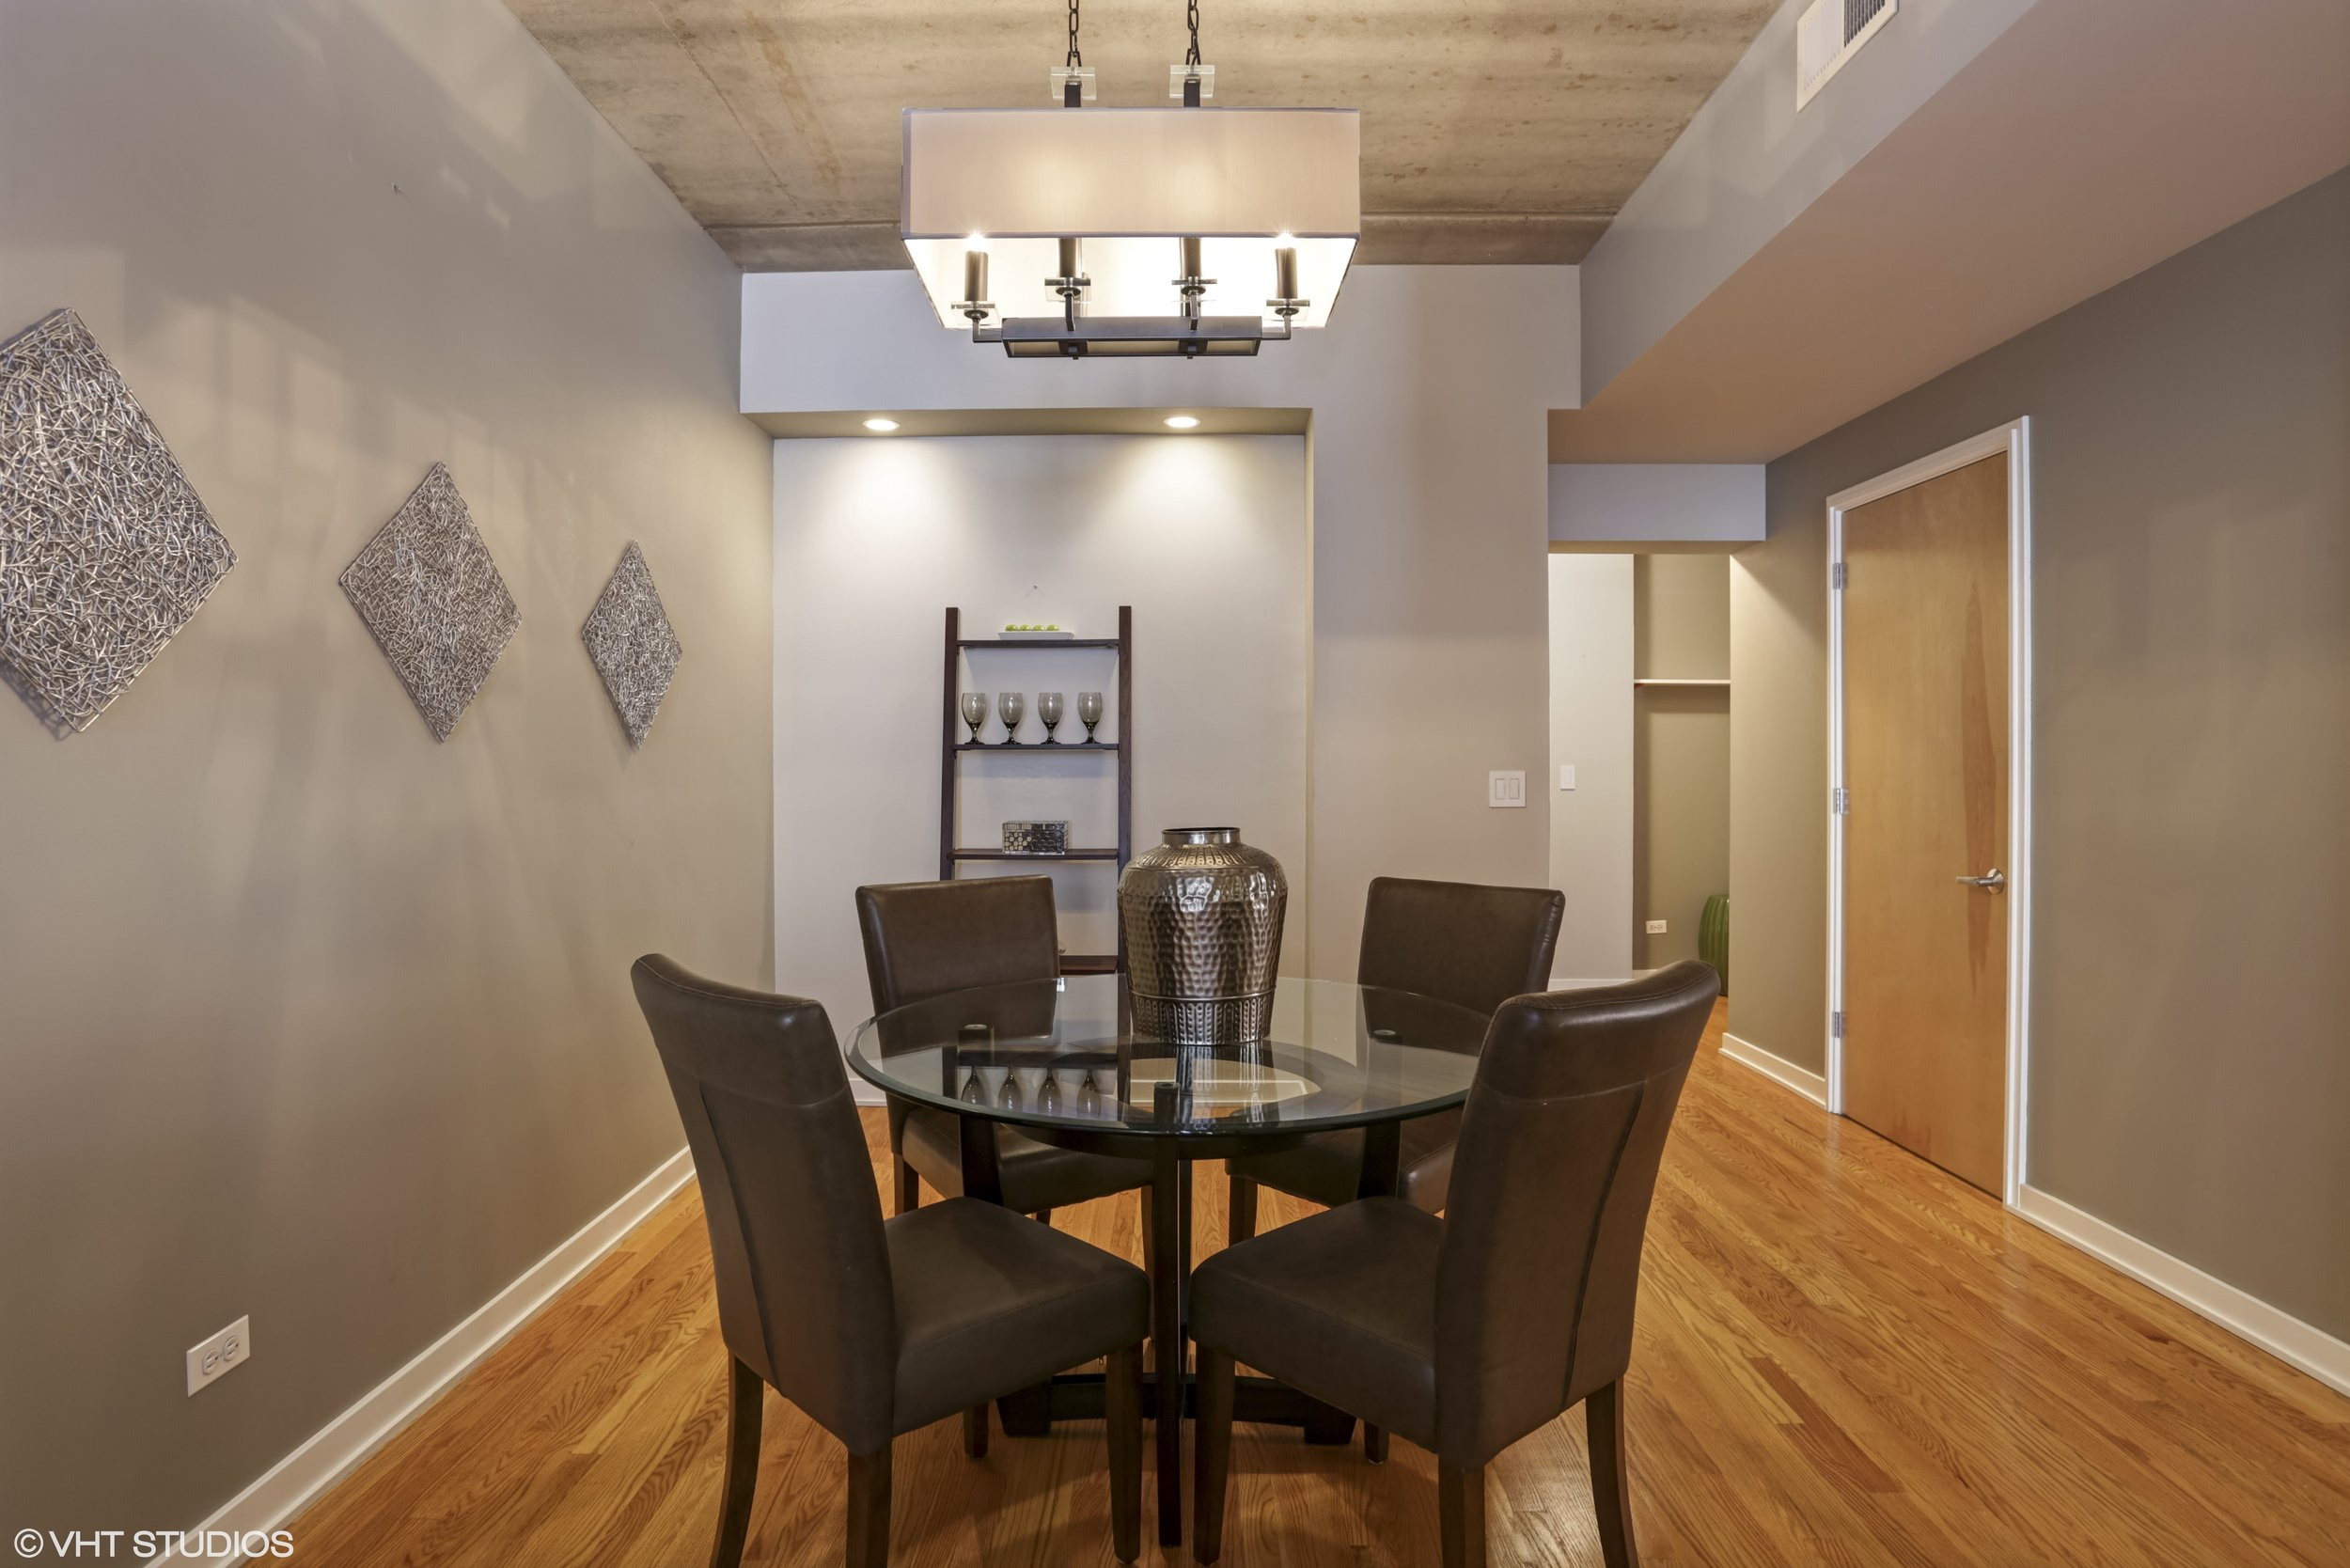 07_5430NorthSheridanRd_308_2_DiningRoom_HiRes.jpg